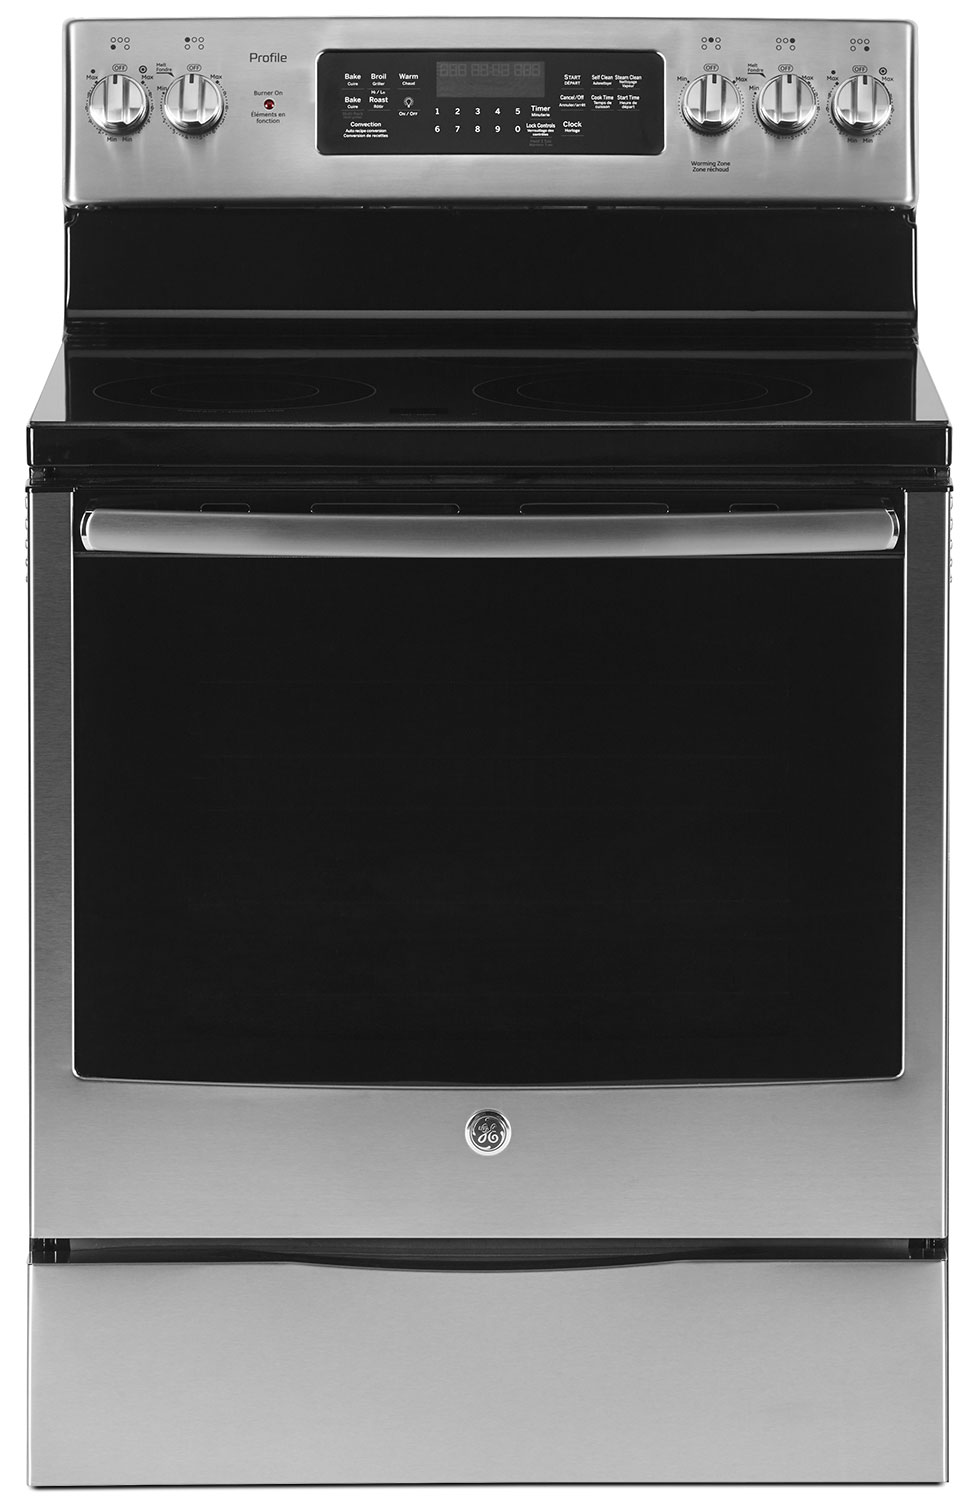 Cooking Products - GE 6.2 Cu. Ft. Freestanding Electric Convection Range – PCB905SKSS